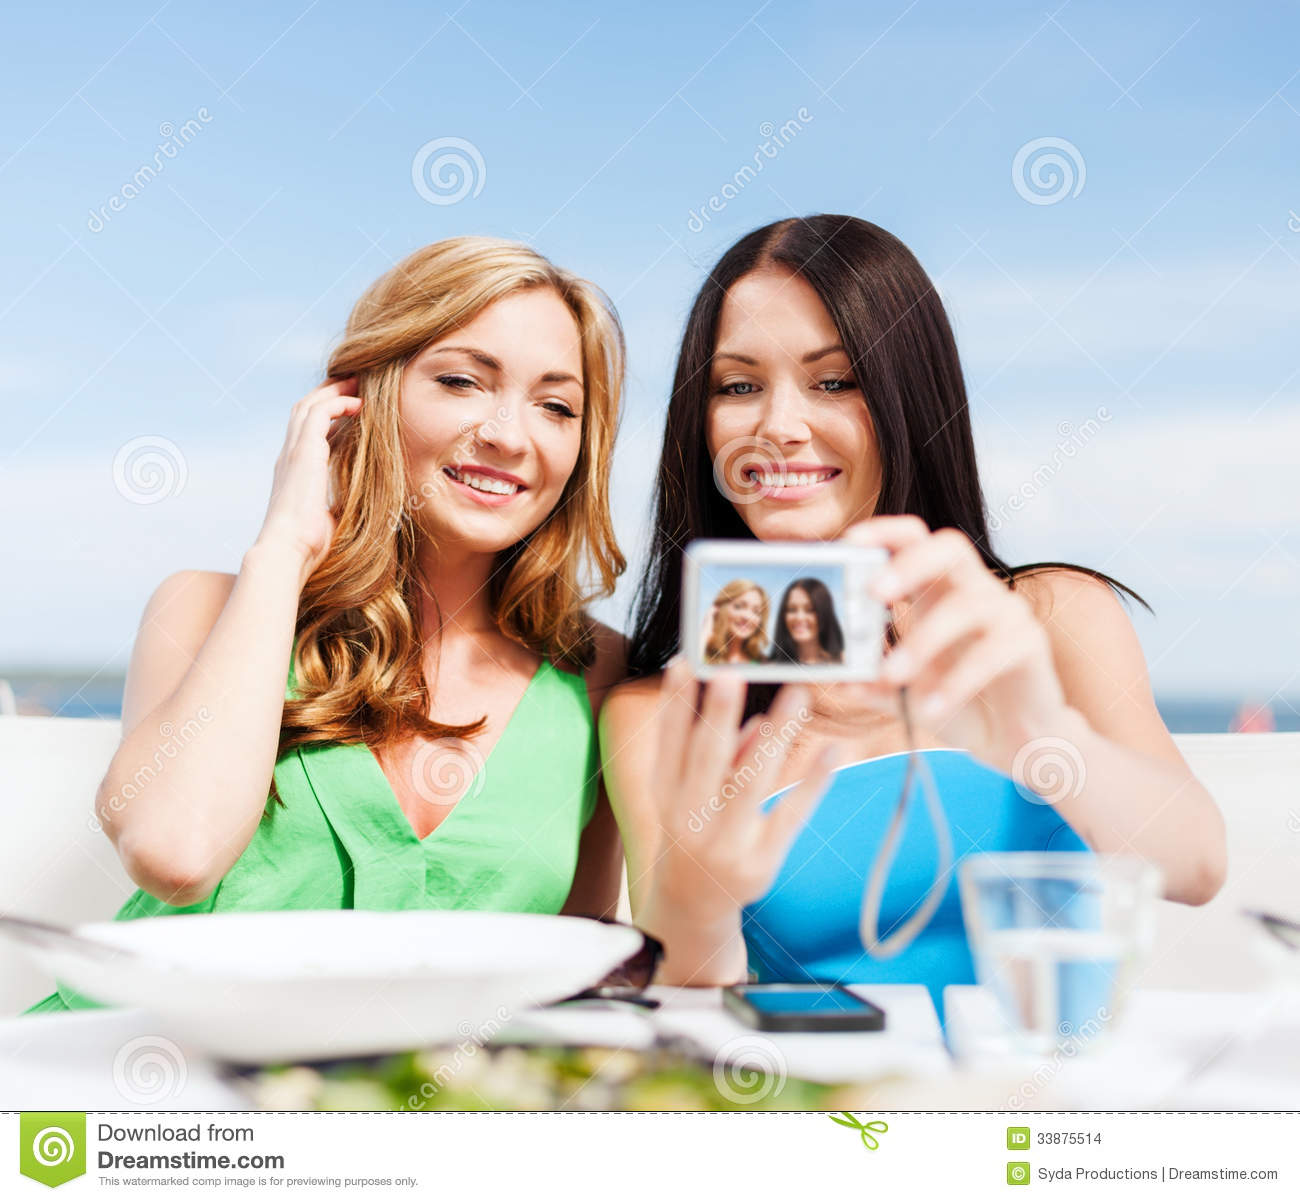 Girls Taking Photo In Cafe On The Beach Stock Photo Image